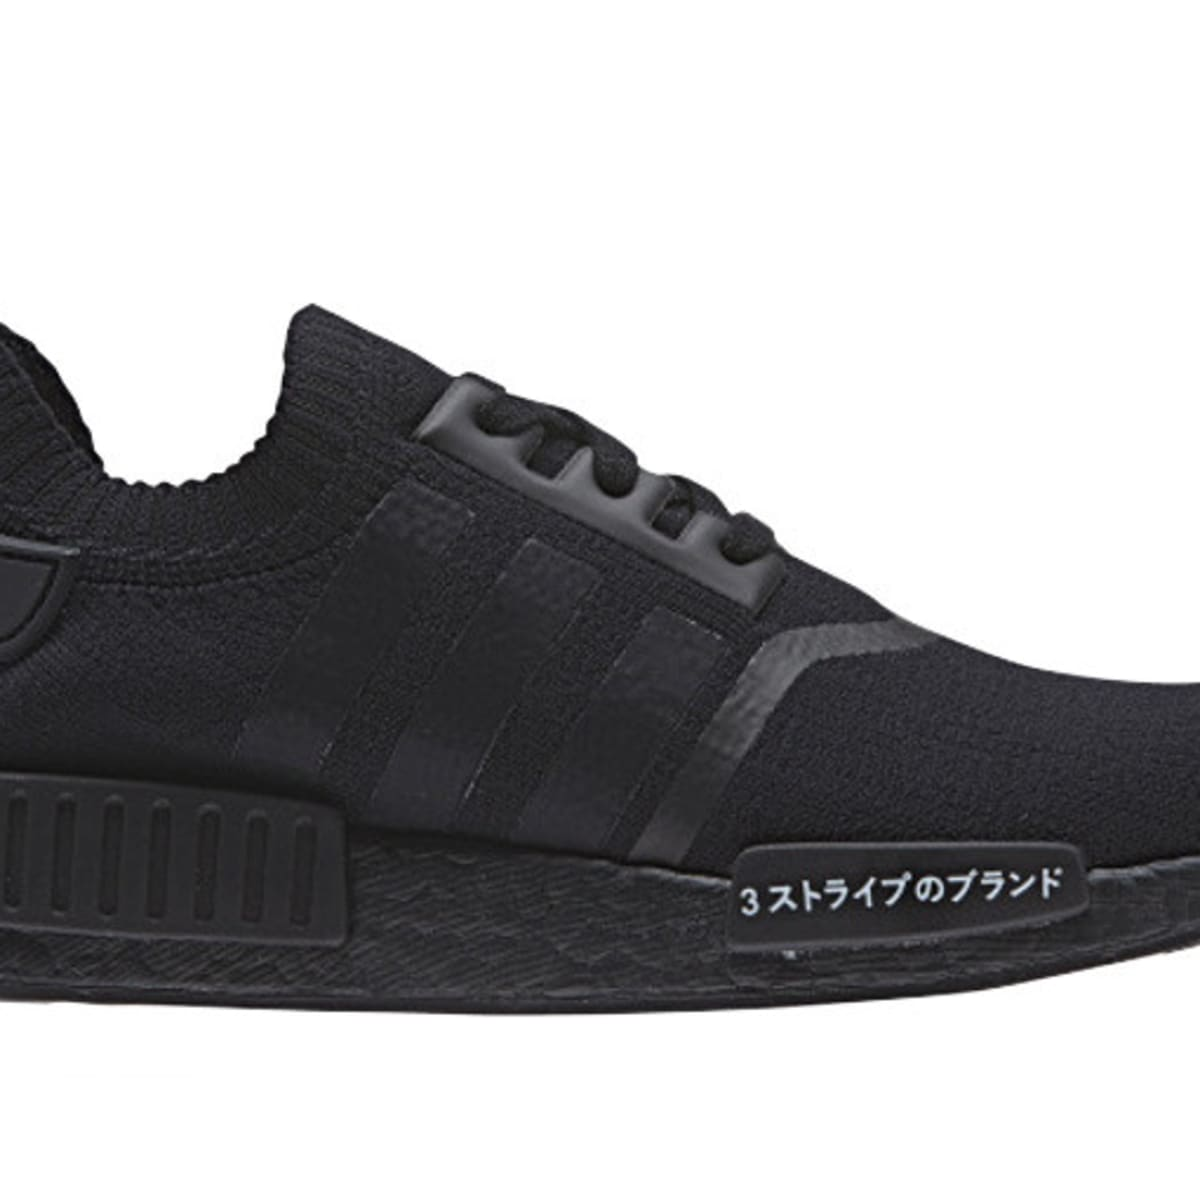 Triple Black And Triple White Colorways Of The Adidas Nmd R1